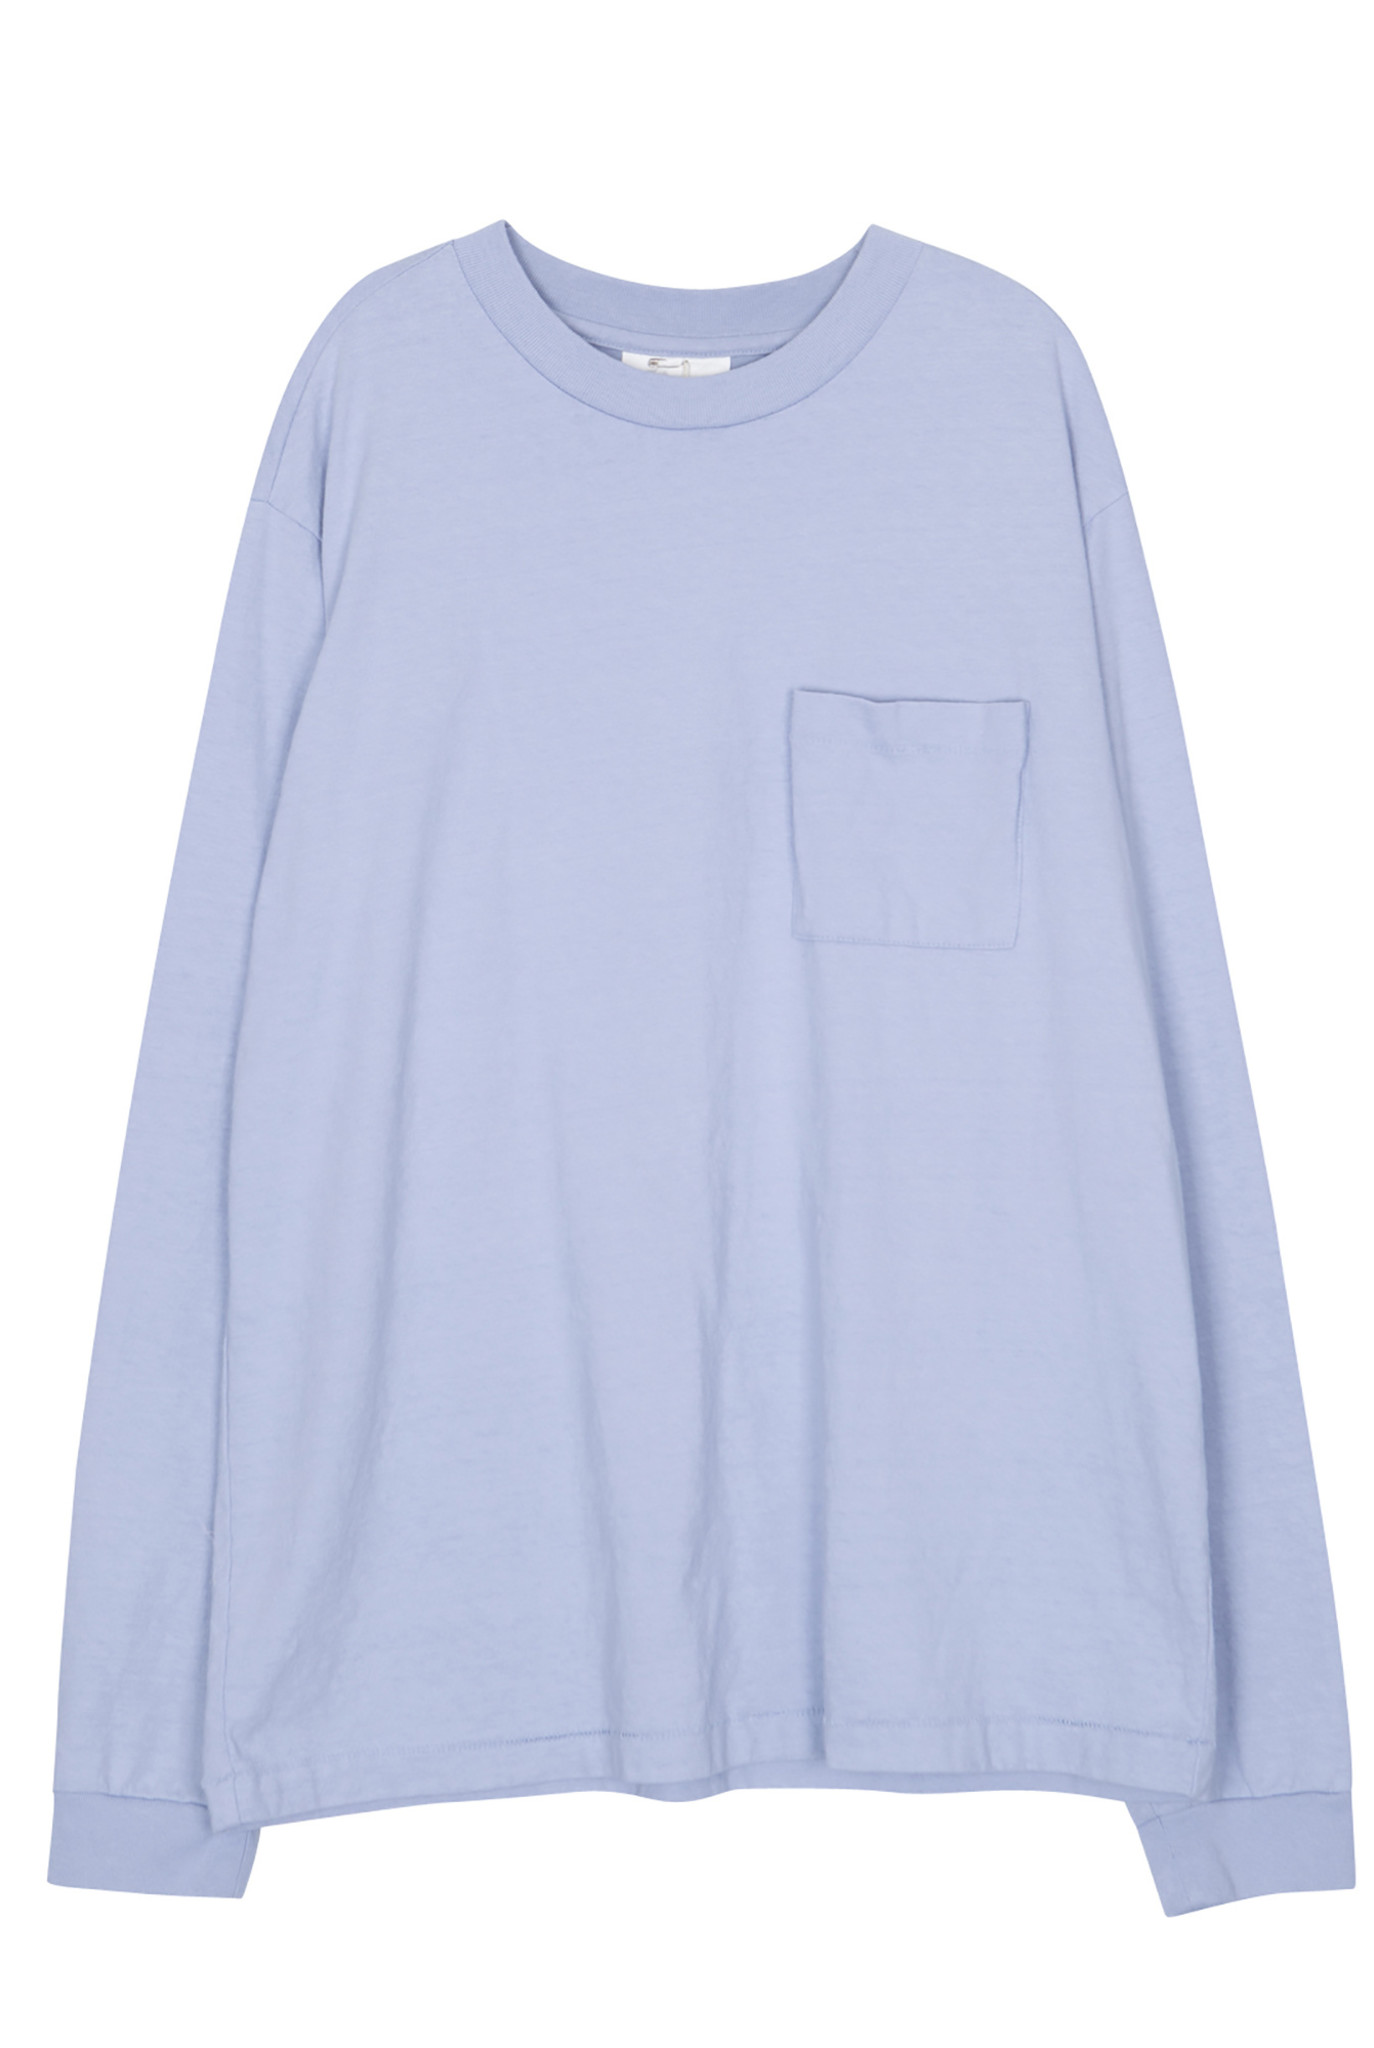 Pocket t-shirt pale blue